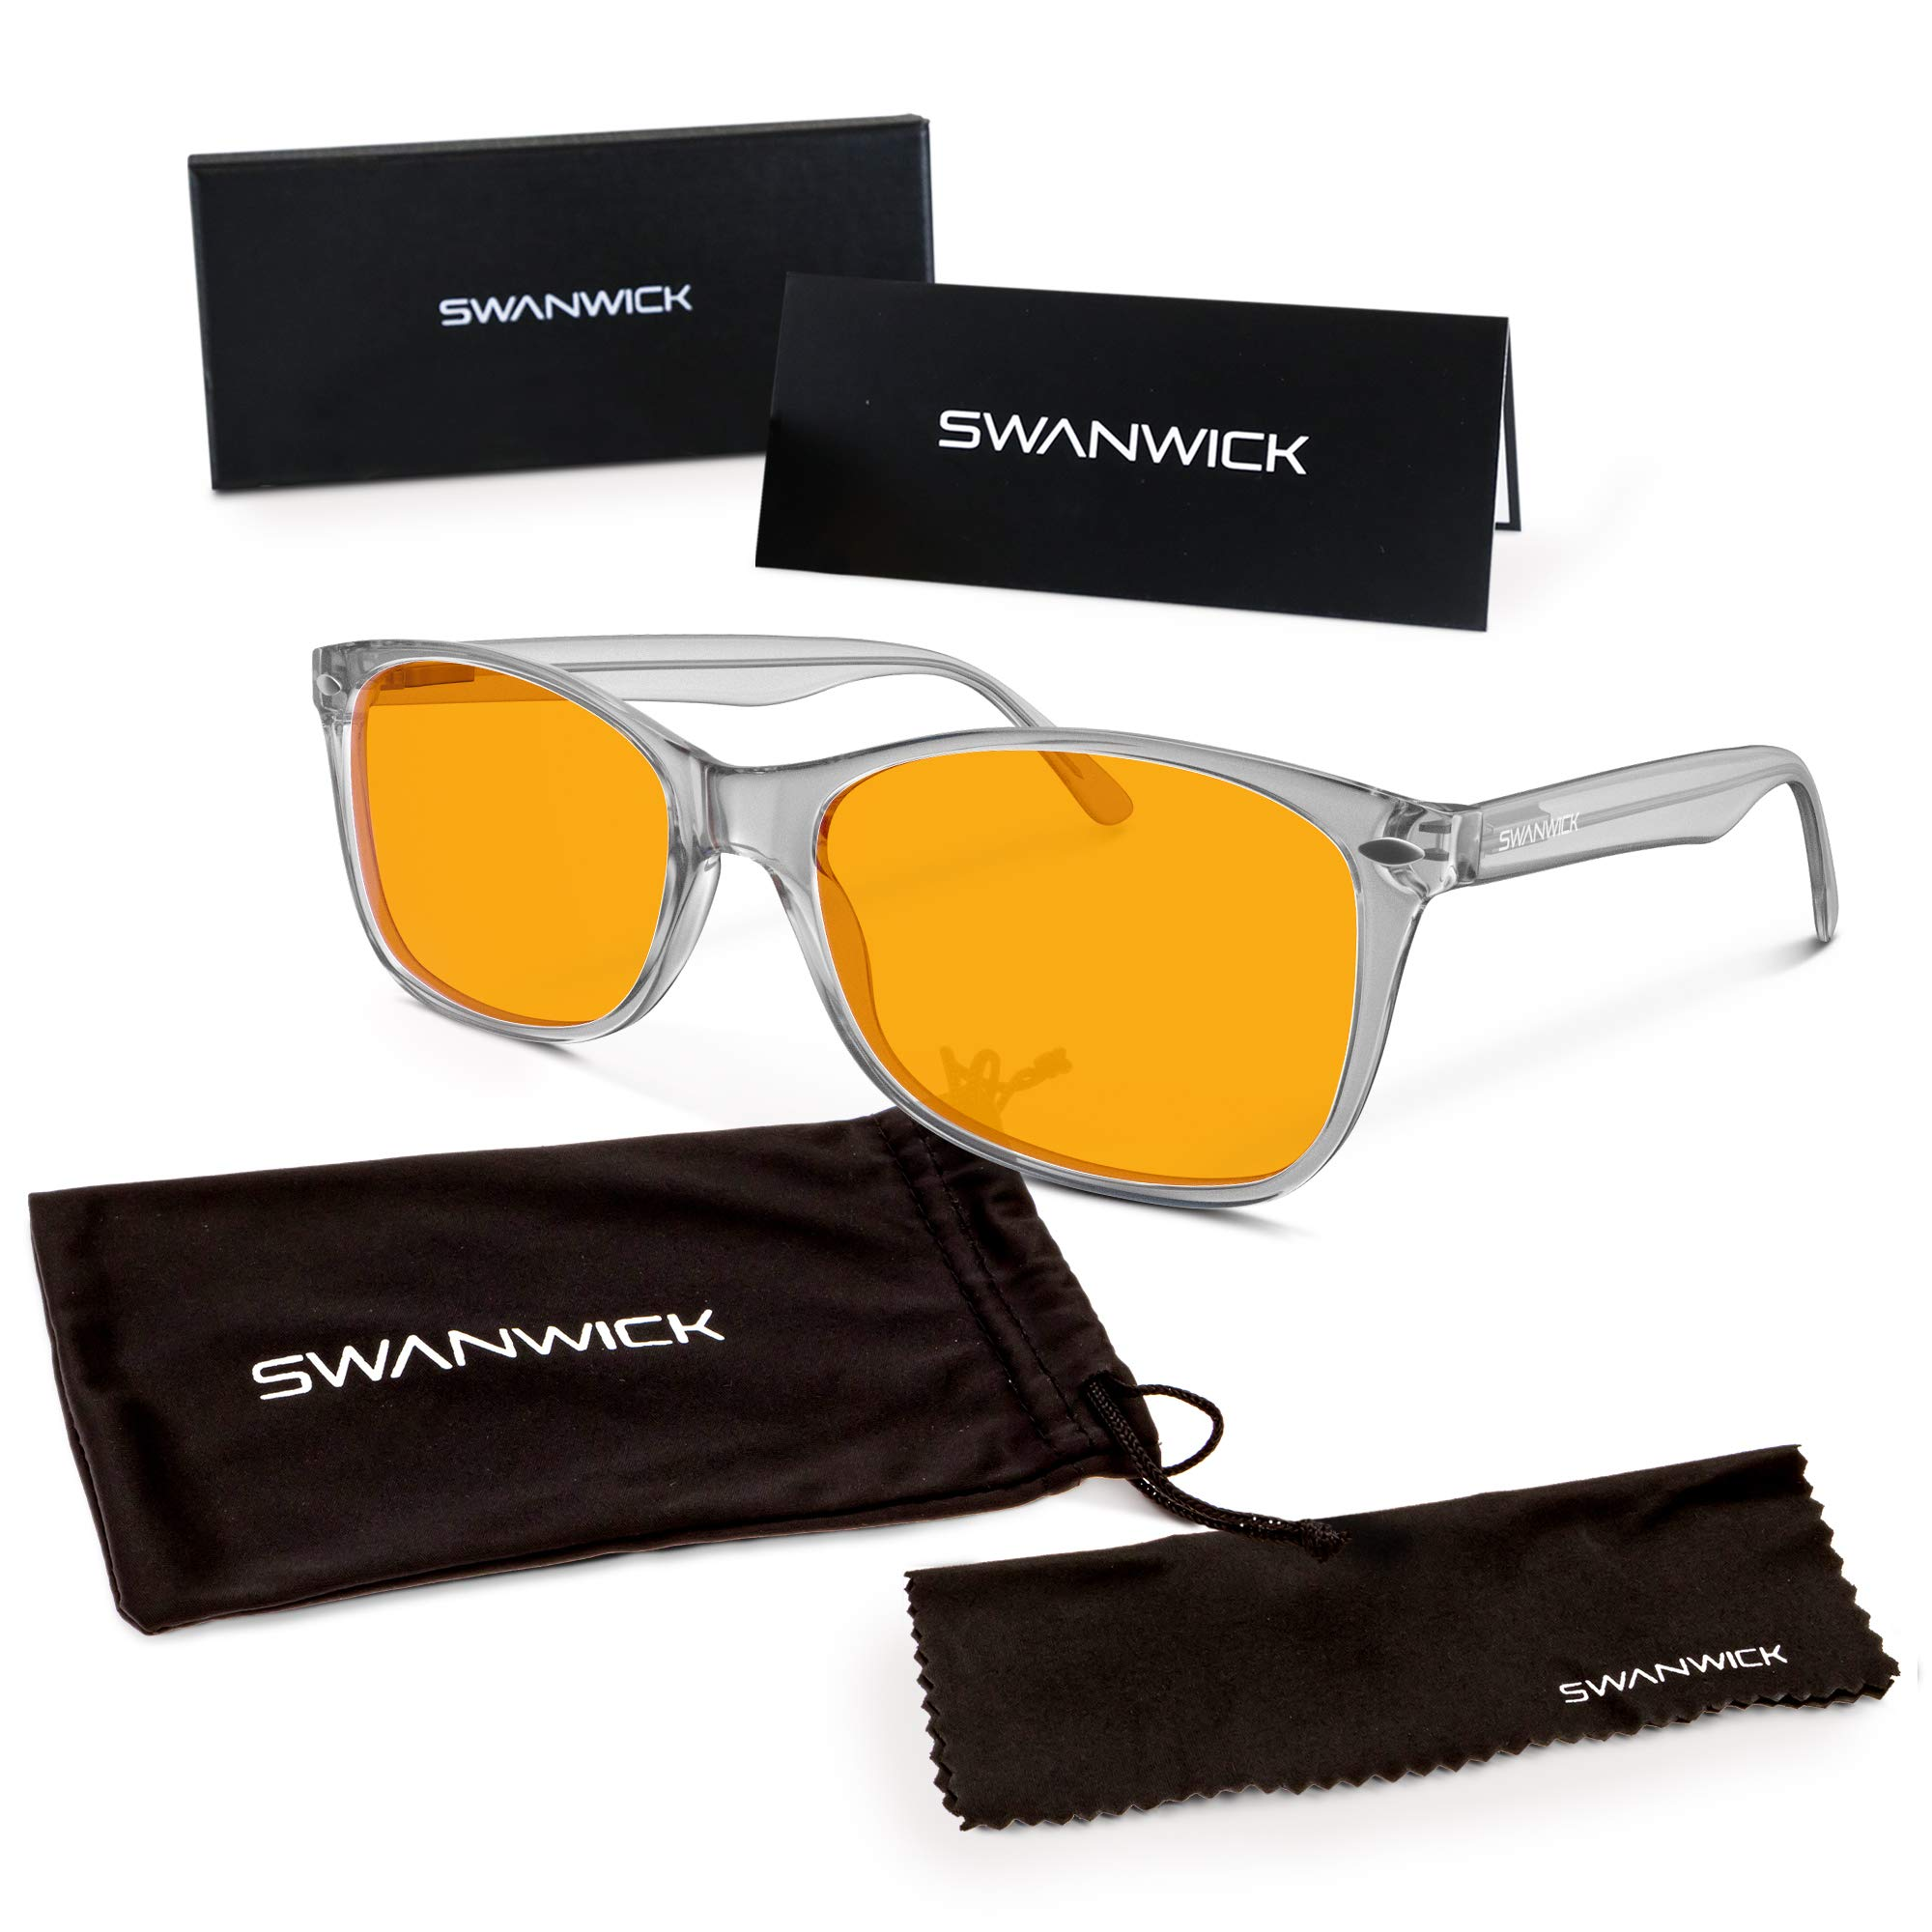 Swannies Blue Light Blocking Computer Glasses with Orange Lens for Night Use - UV Protection Anti Eye Strain (Diamond) Regular